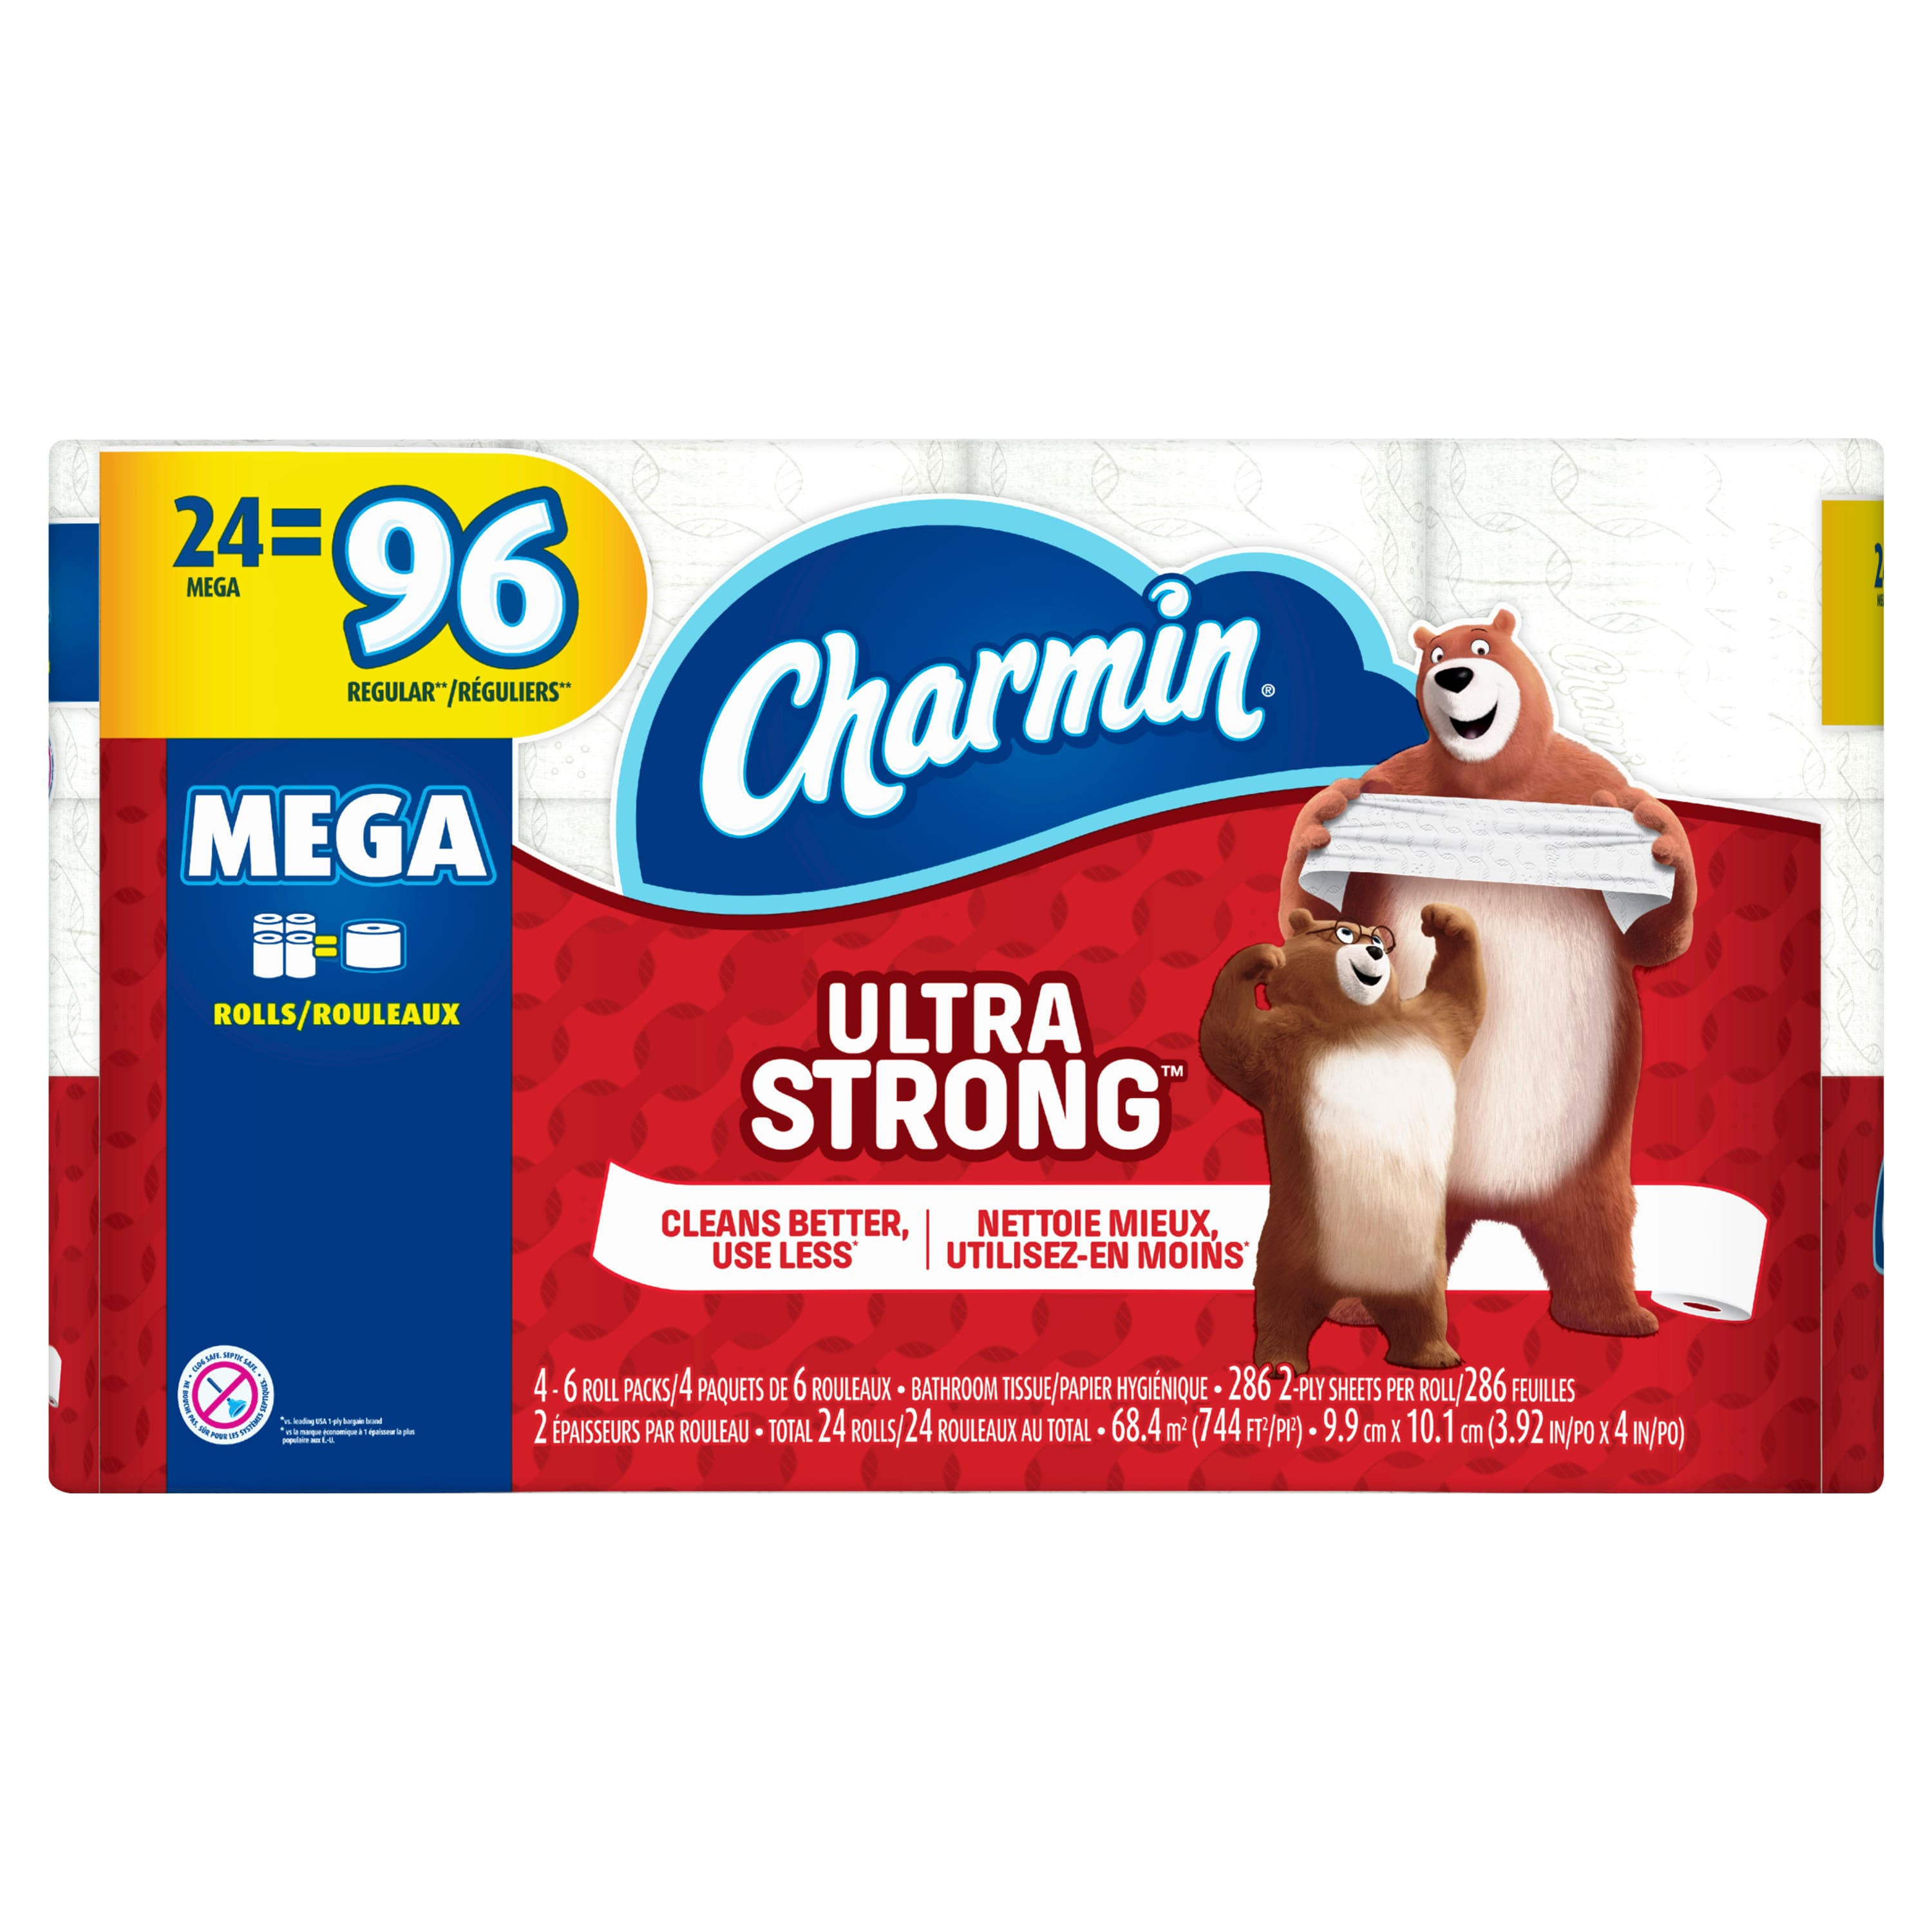 Charmin Ultra Strong Toilet Paper, 24 Mega Rolls $23.82 @ Walmart -- Sparkle Paper Towels 6 Giant Rolls 5.74